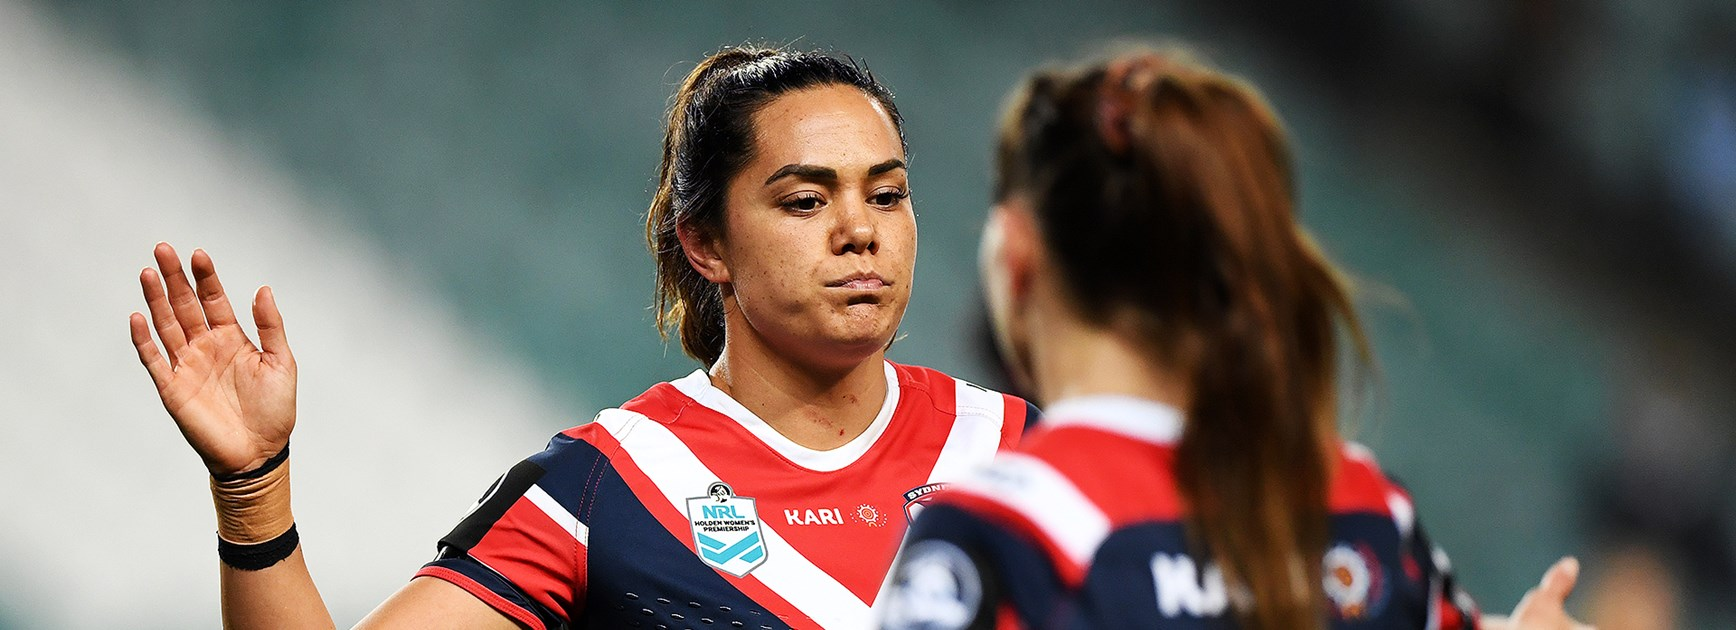 NRLW draw: Roosters v Warriors, Dragons v Broncos in week 1